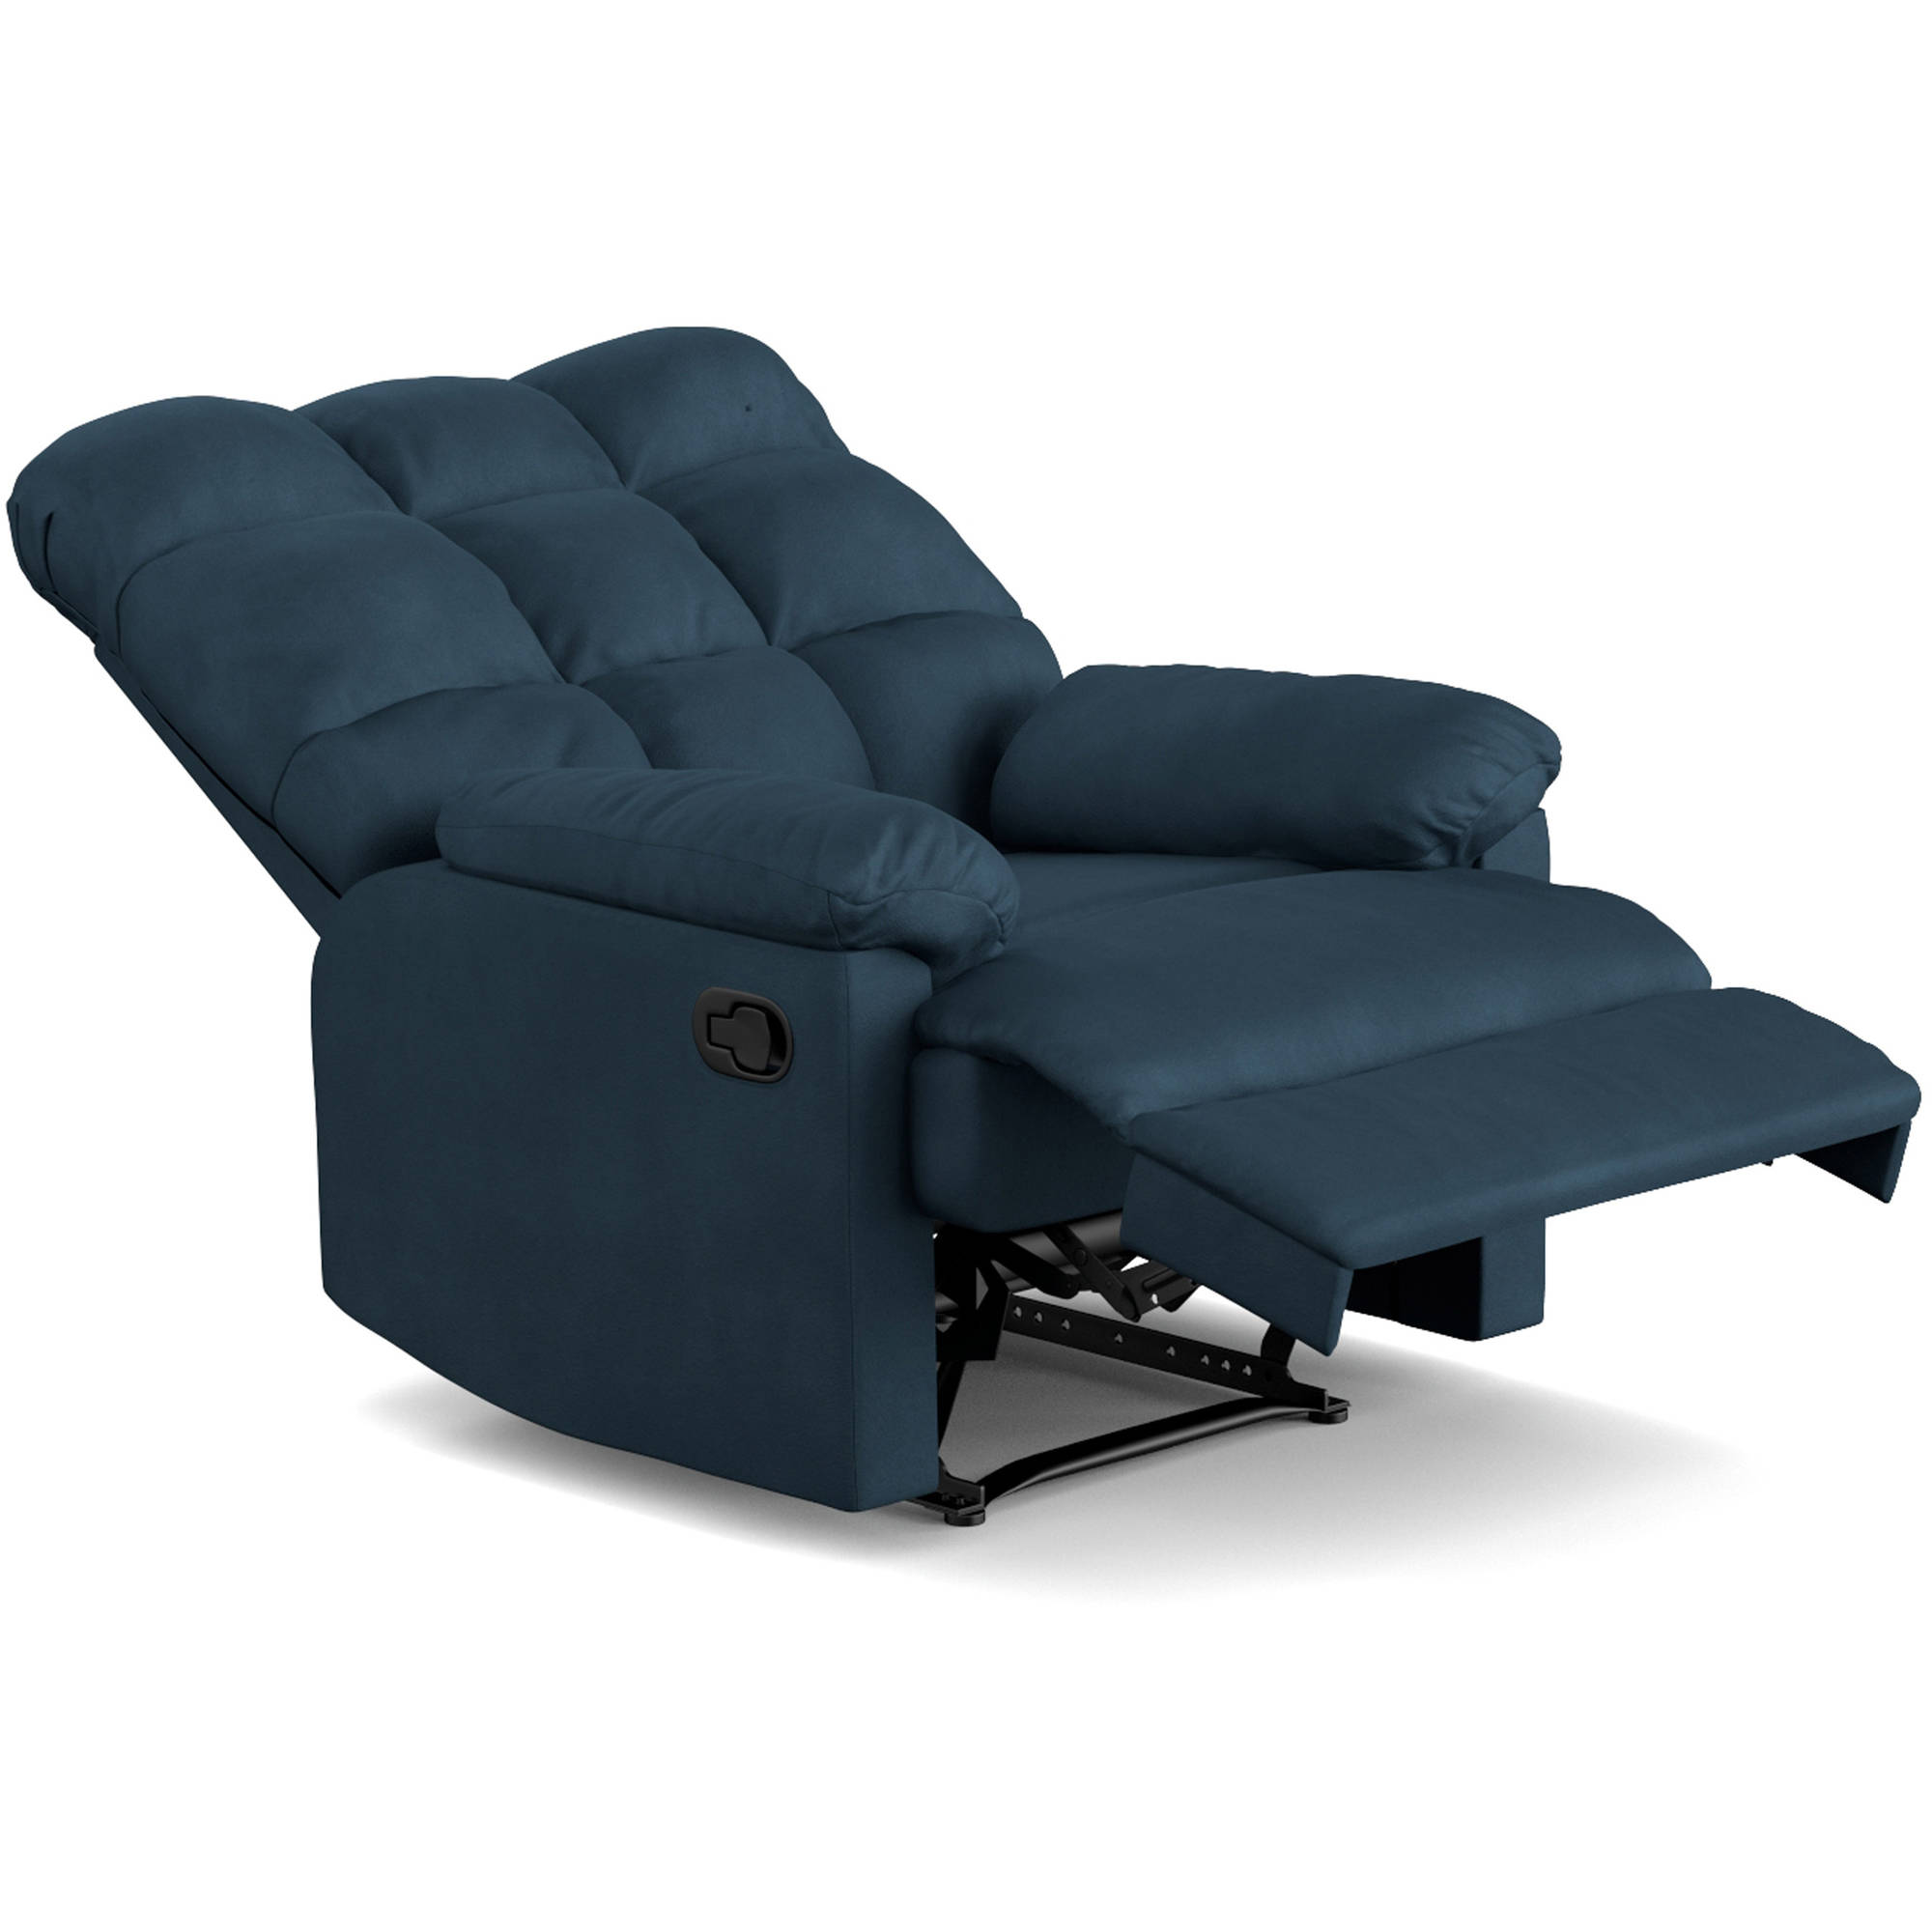 Mainstays Baja Wall Hugger Microfiber Biscuit back Recliner Chair Multiple Colors - Walmart.com  sc 1 st  Walmart : lazy boy owen recliner - islam-shia.org